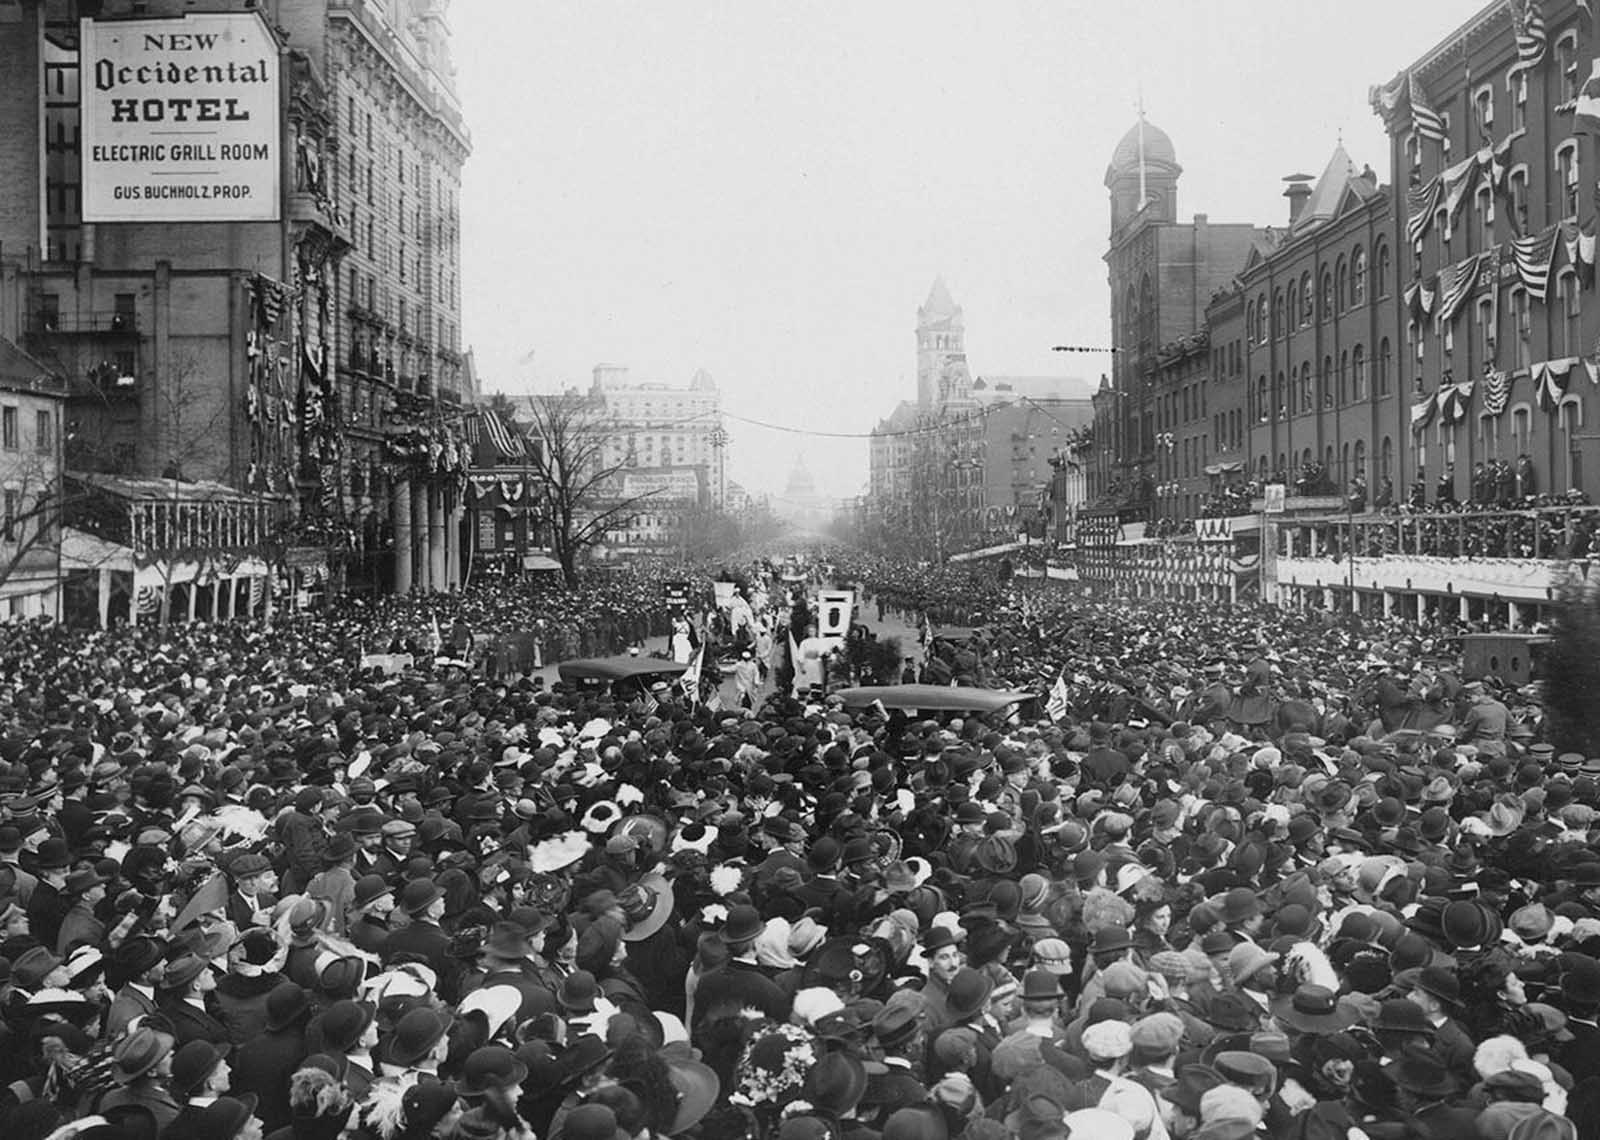 The crowd converges on marchers, blocking the parade route during March 3, 1913, suffrage procession, in Washington, District of Columbia.